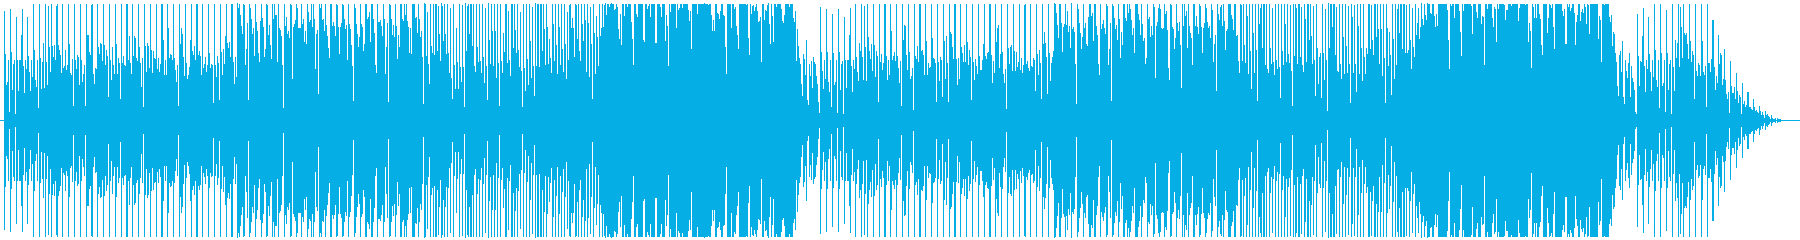 Halloween-like songs with a suspicious atmosphere's reproduced waveform